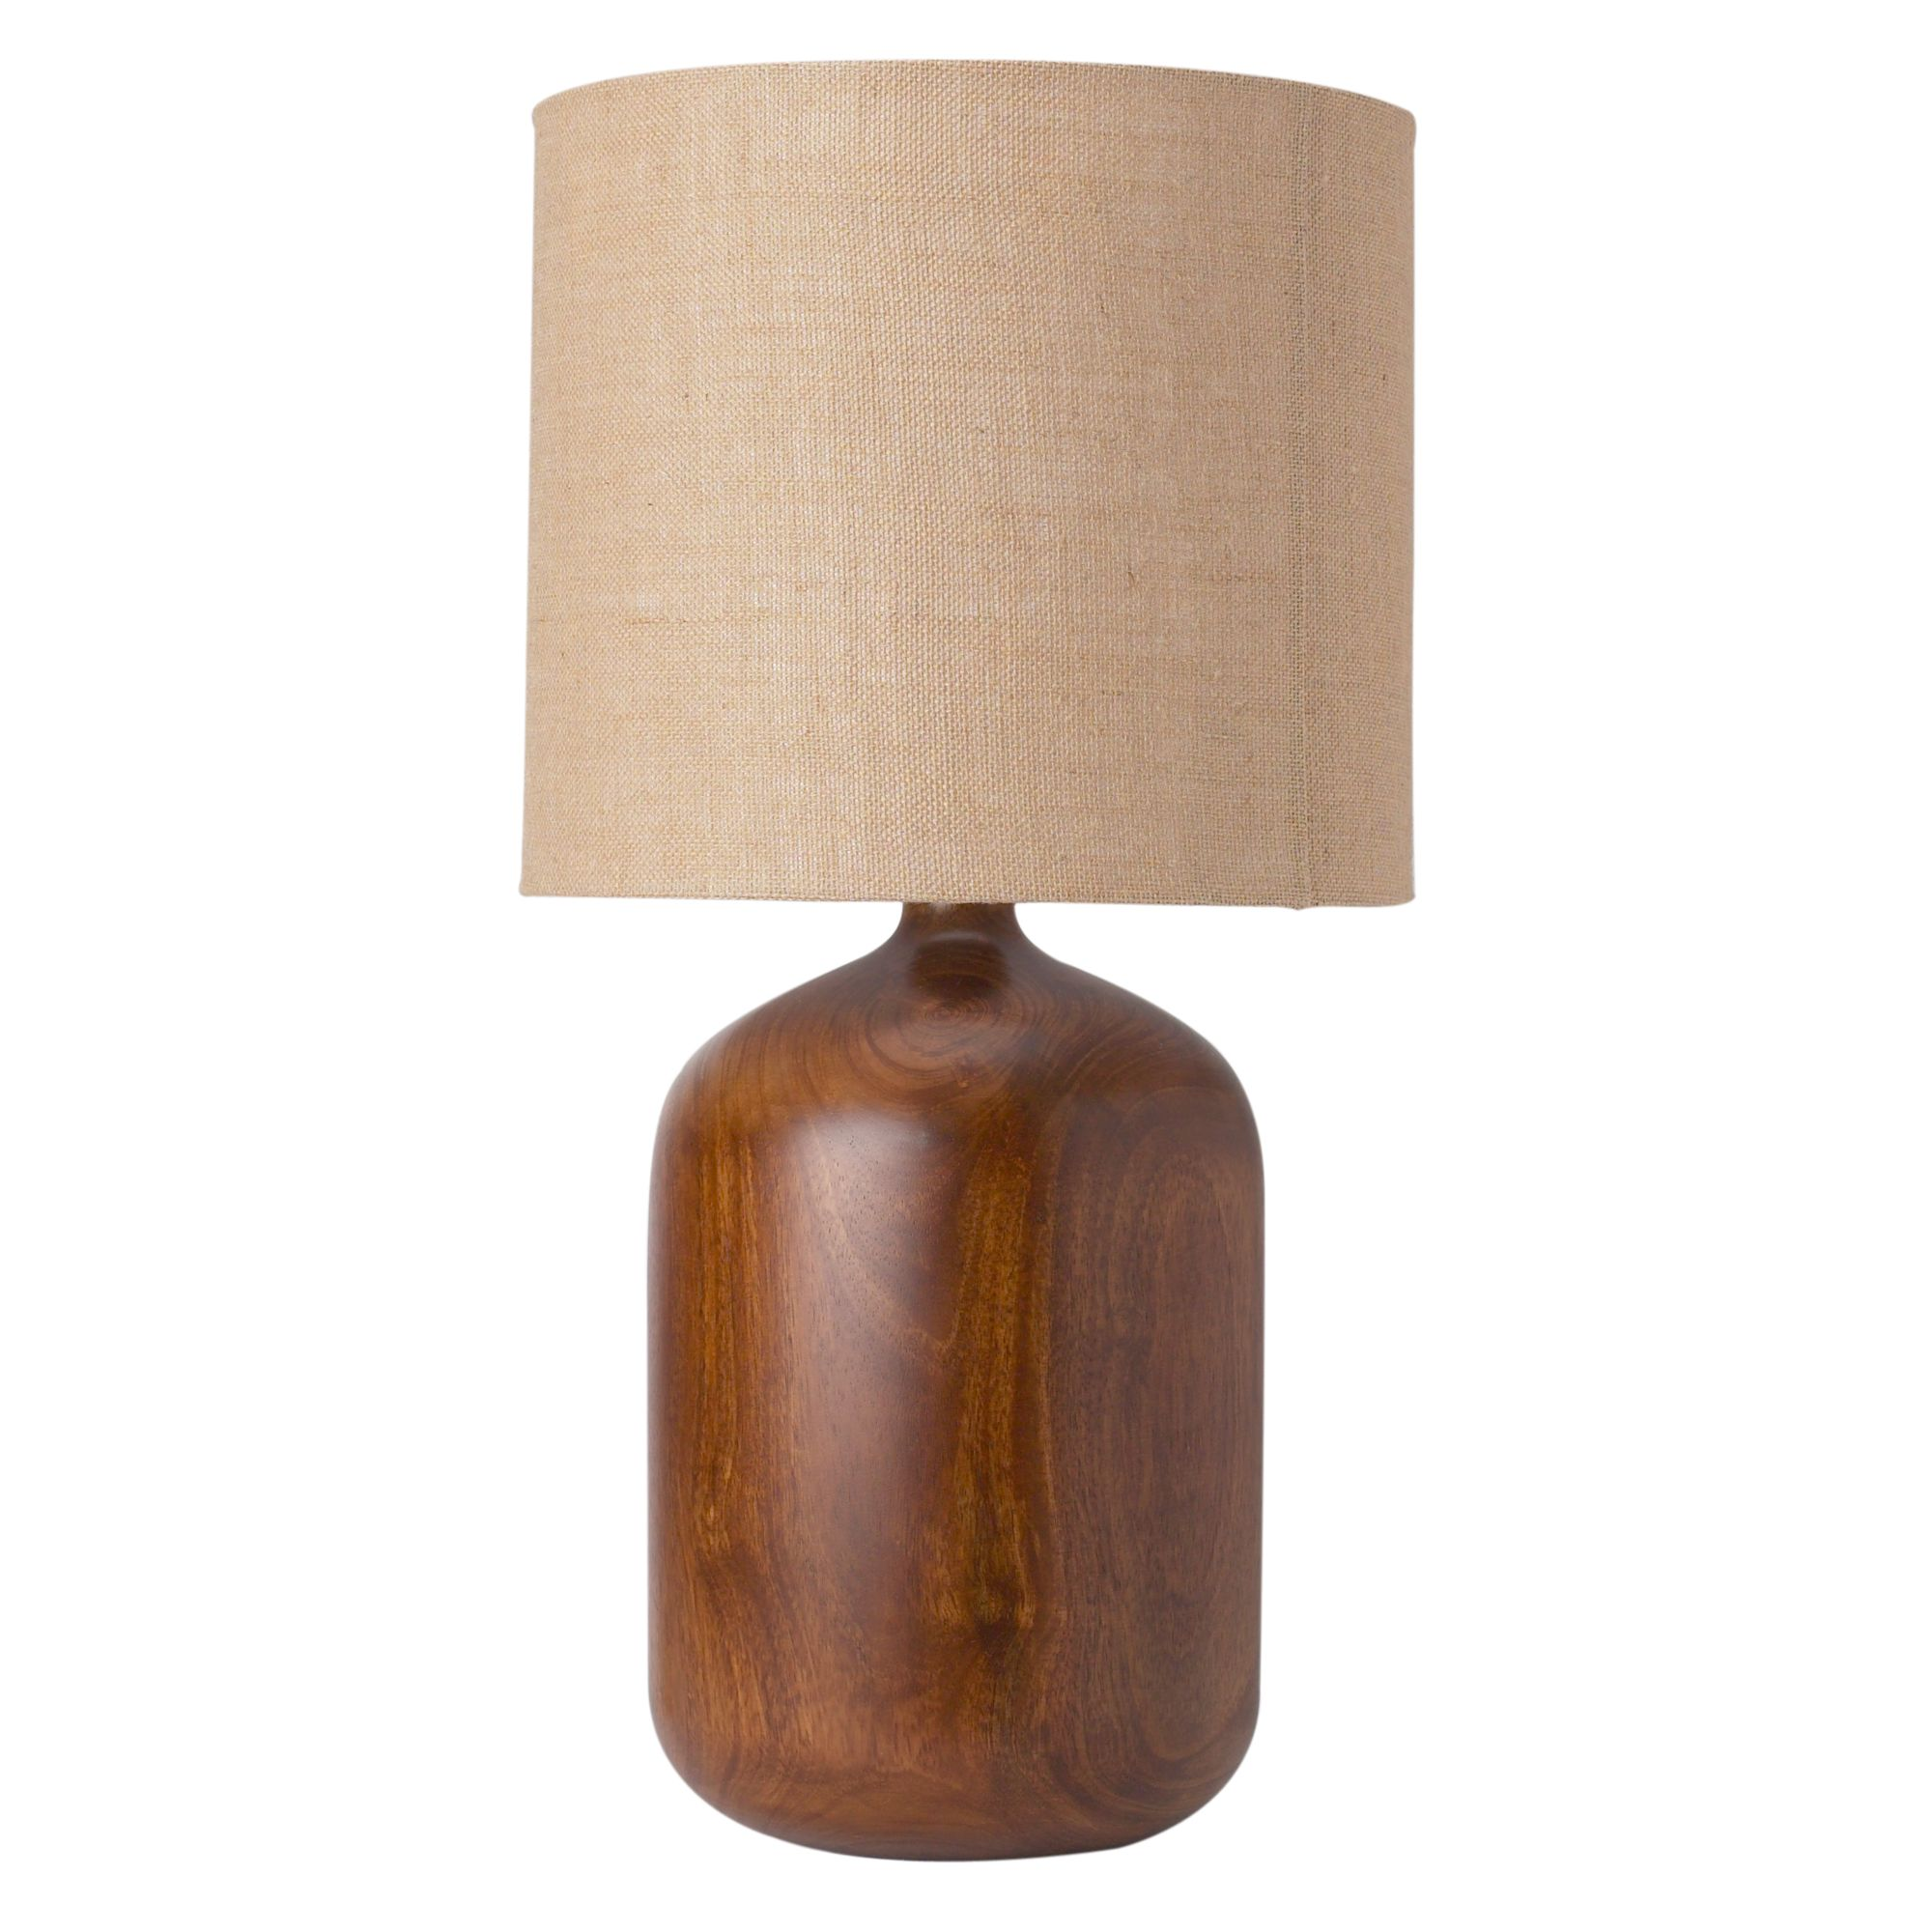 Wooden Table Lamps Designs Wooden Table Lamps